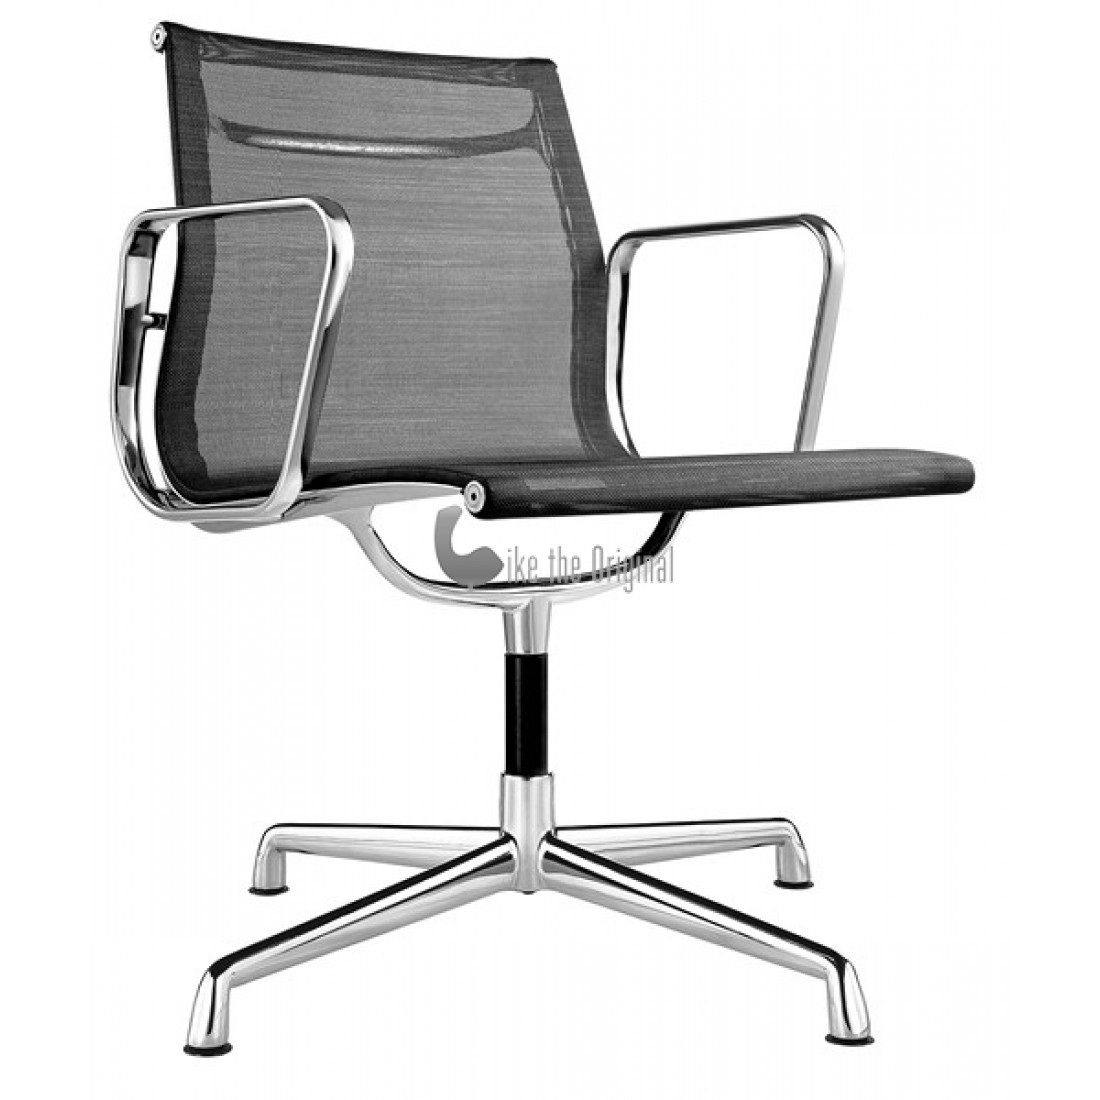 Delicieux Non Swivel Office Chair   Home Office Furniture Set Check More At Http://